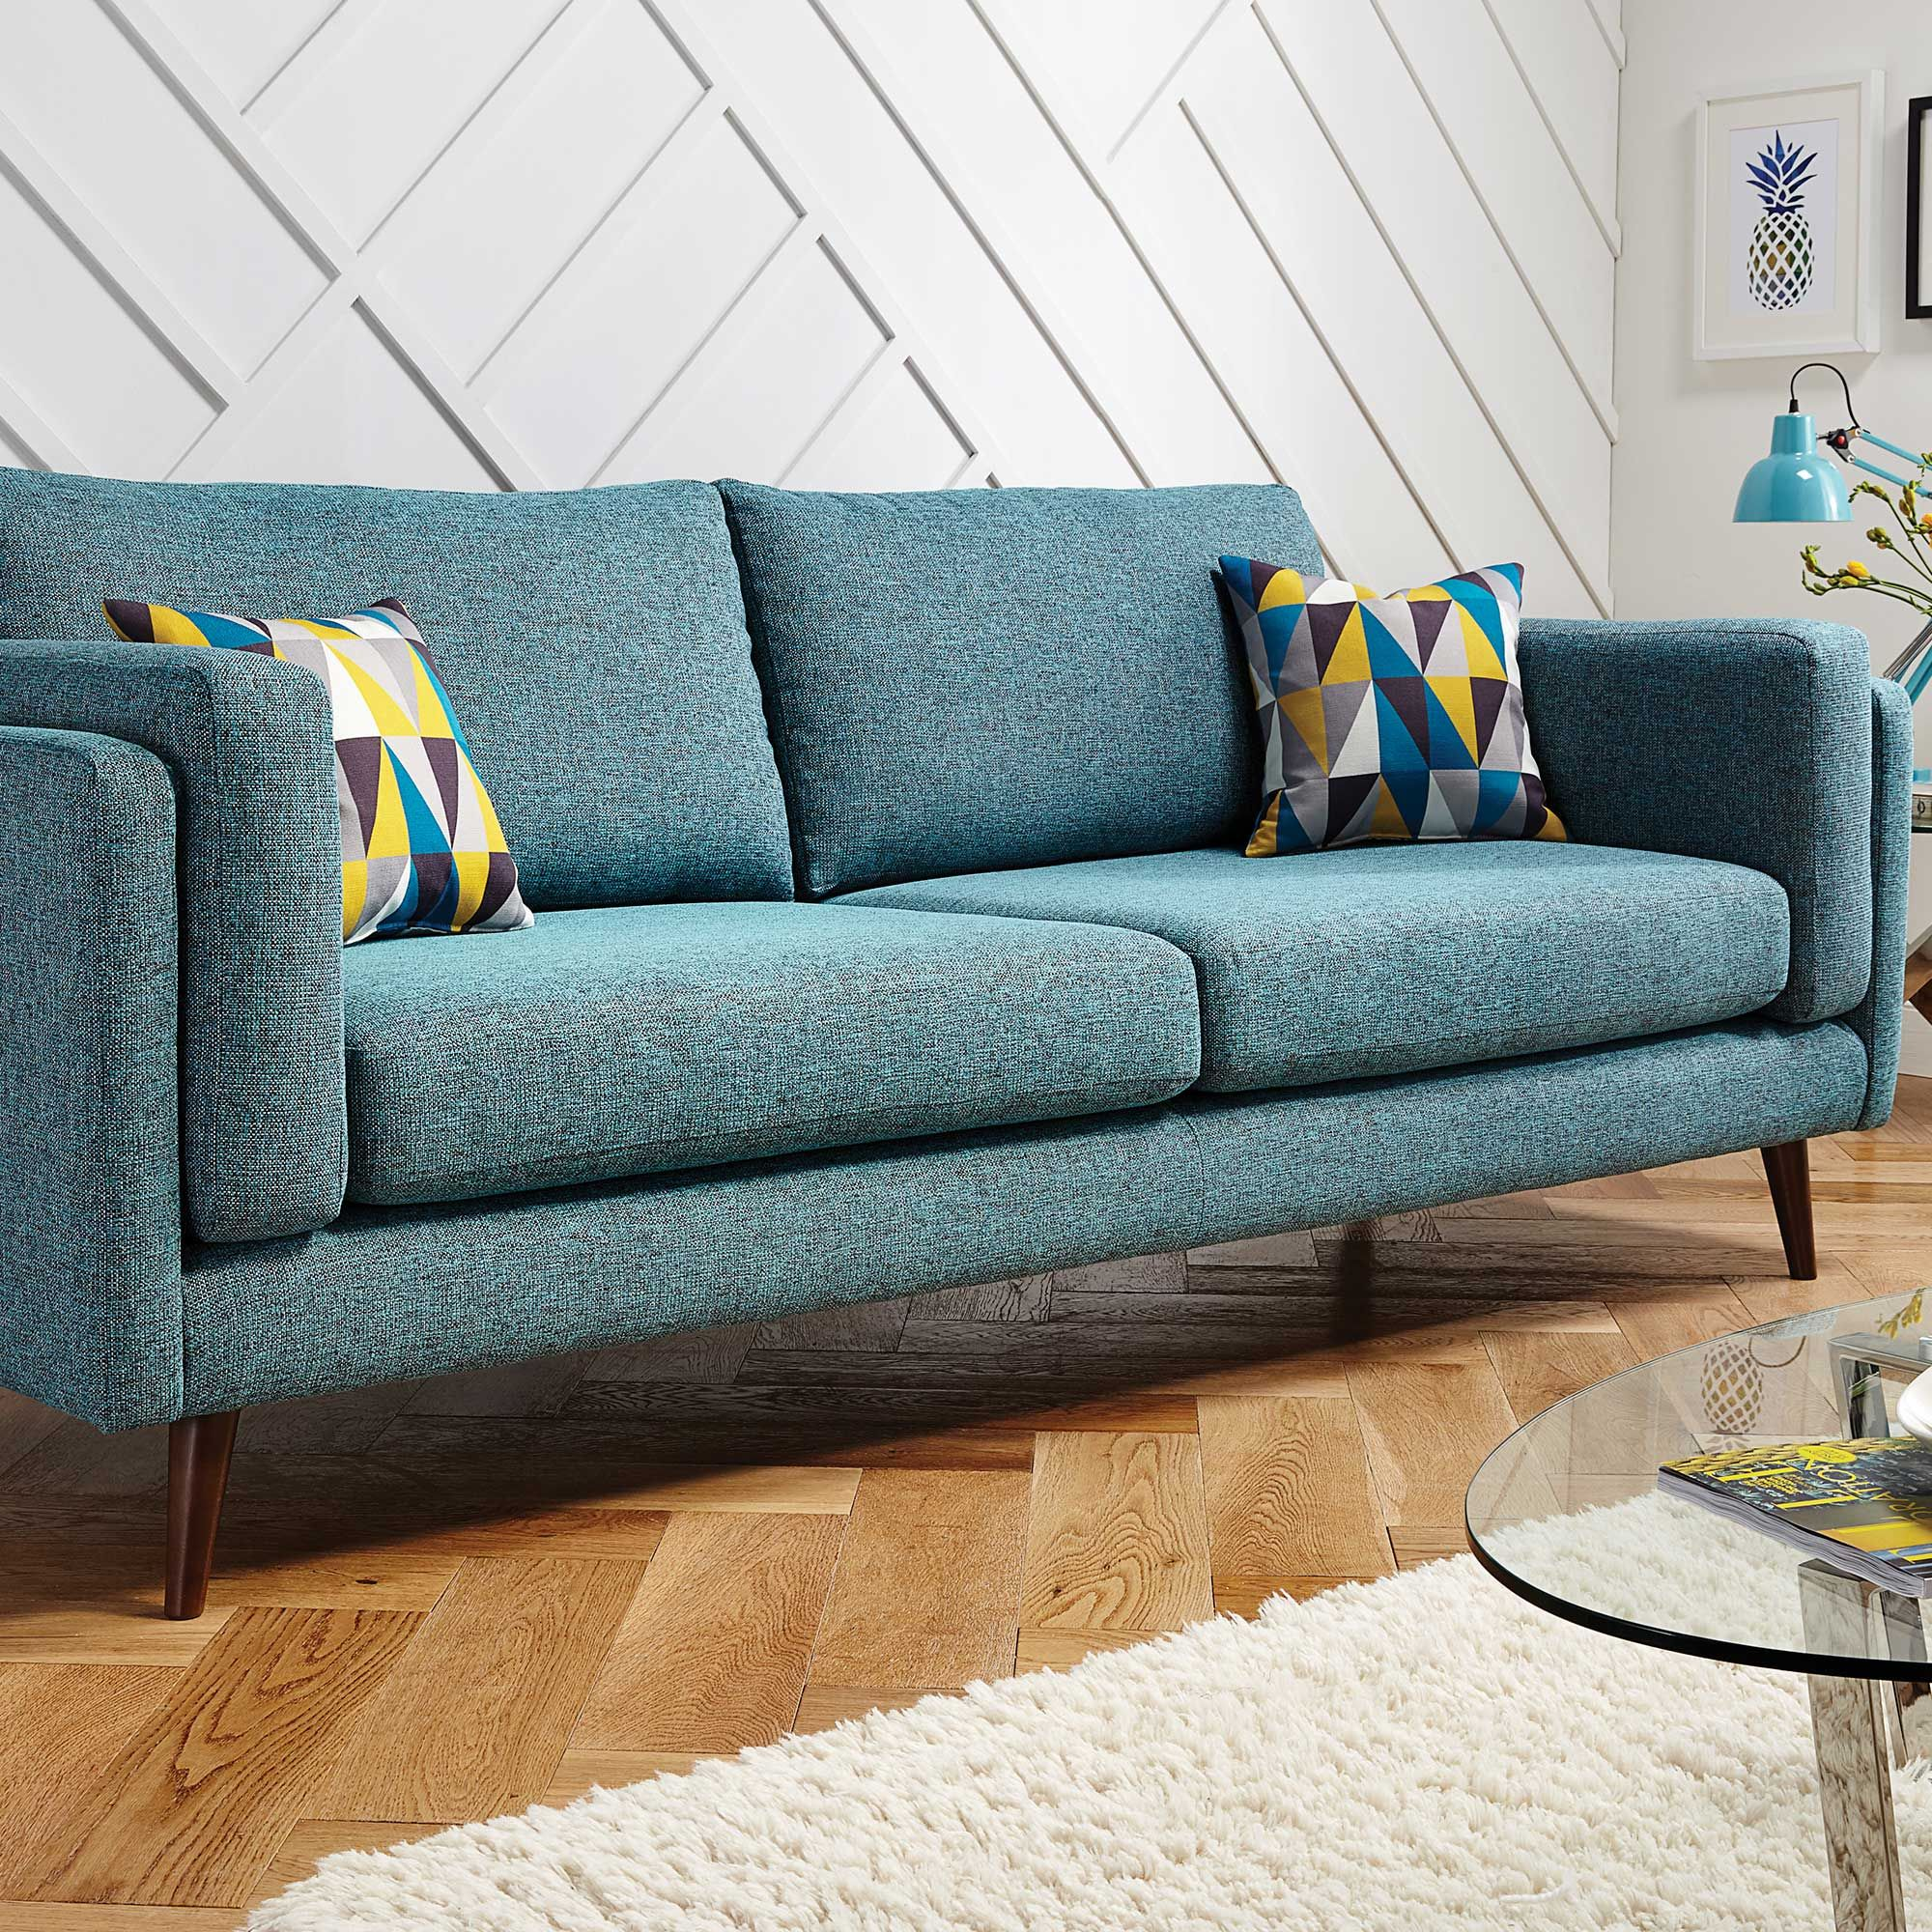 Add a pop of colour to your living room with the retro inspired Juni